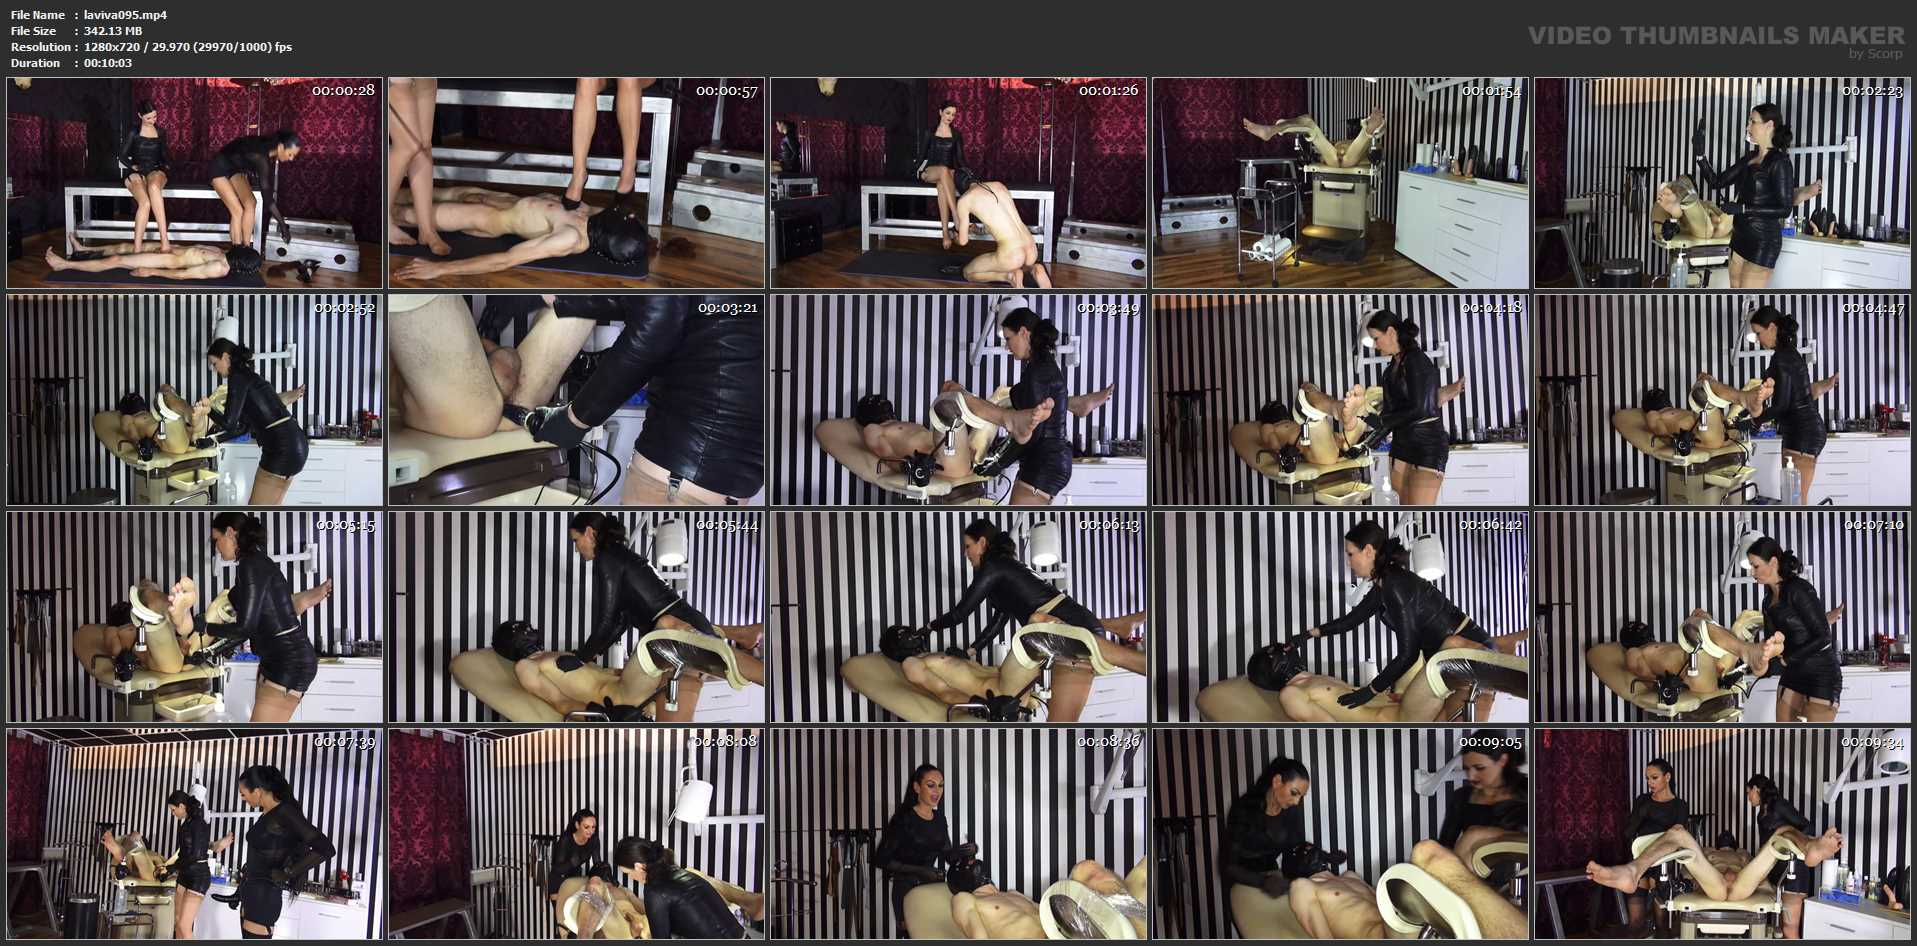 Lady Victoria Valente In Scene: Overwhelmed and used - Part 5 - CLIPS4SALE / LADYVICTORIAVALENTE - HD/720p/MP4